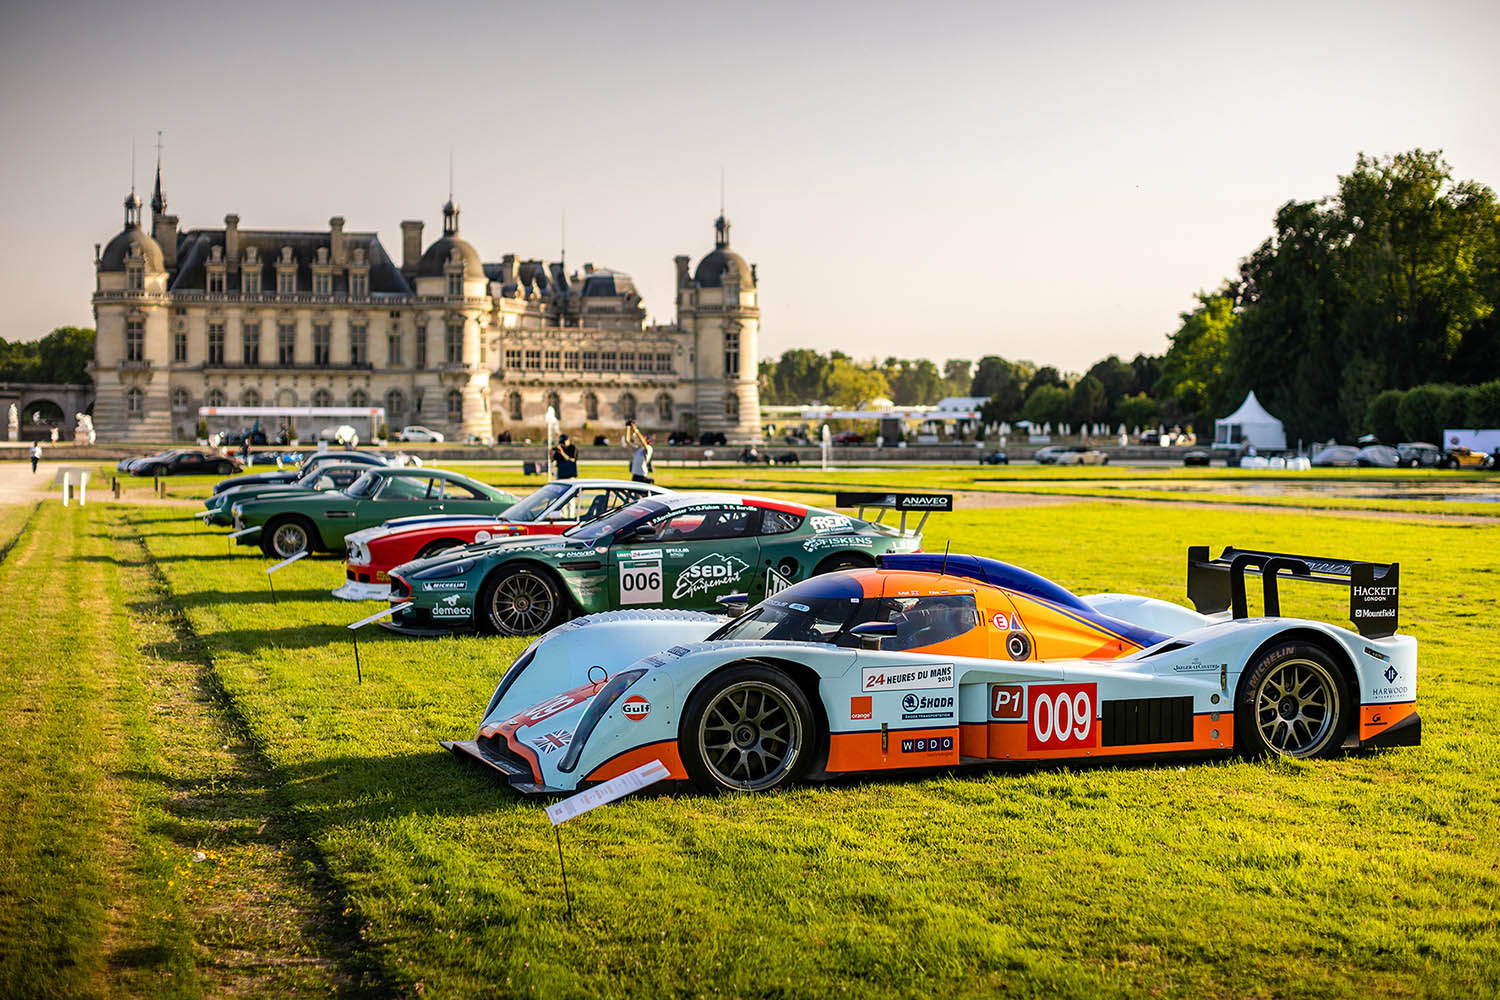 2019_PeterAuto_Chantilly_AlexisGoure_1743.jpg